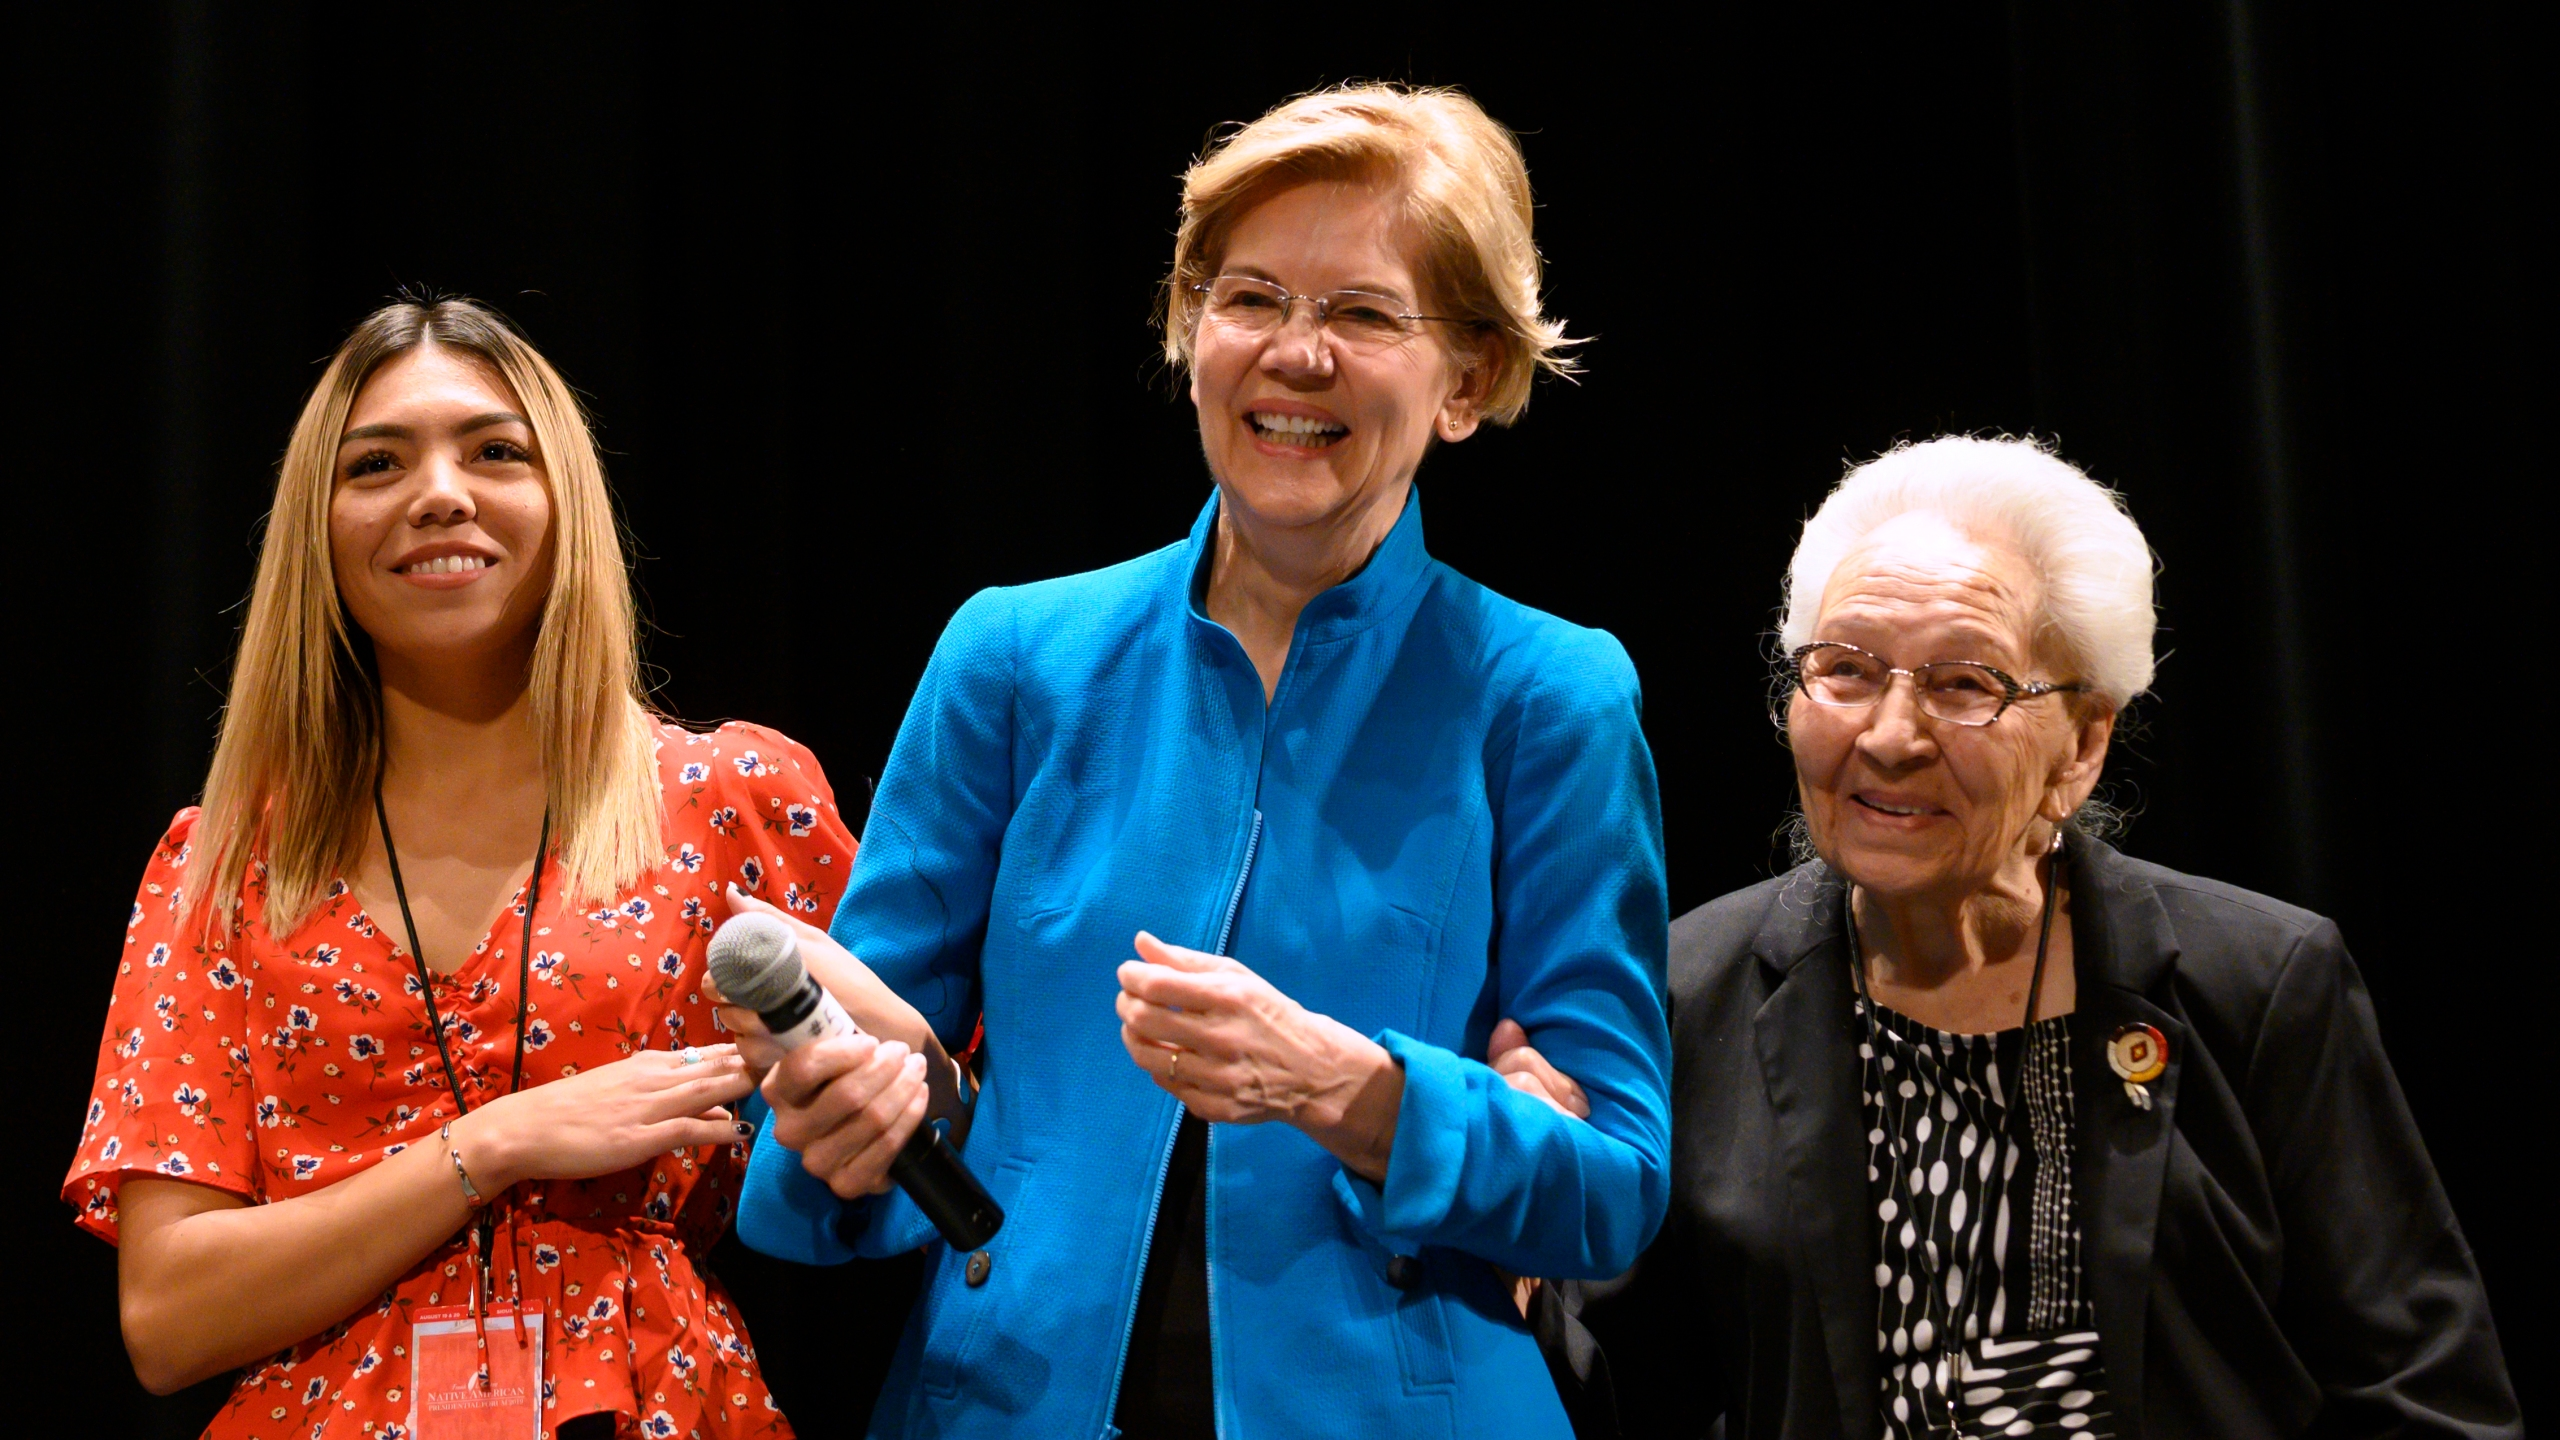 Democratic presidential candidate Sen. Elizabeth Warren (D-MA) is escorted on stage by Donna Brandis (L) and Marcella LeBeau (R) at the Frank LaMere Native American Presidential Forum on August 19, 2019 in Sioux City, Iowa. (Credit: by Stephen Maturen/Getty Images)